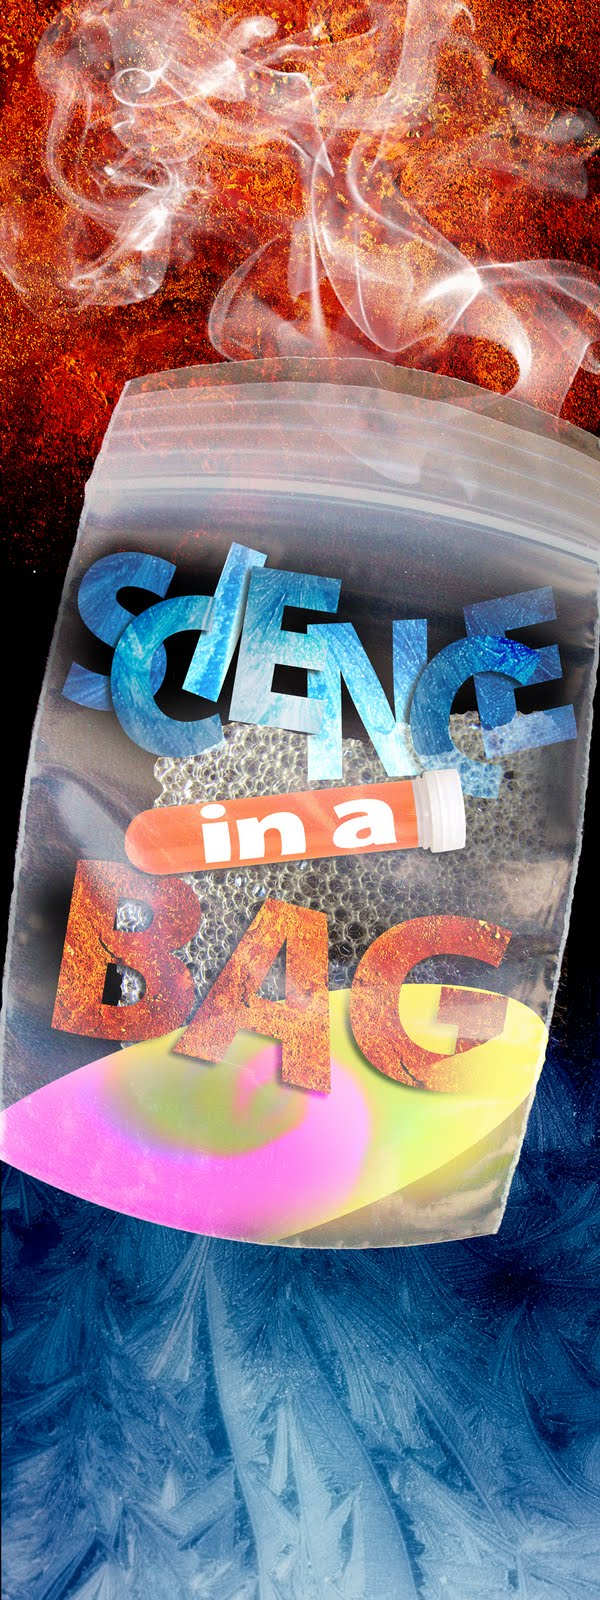 show-ScienceInaBag-01